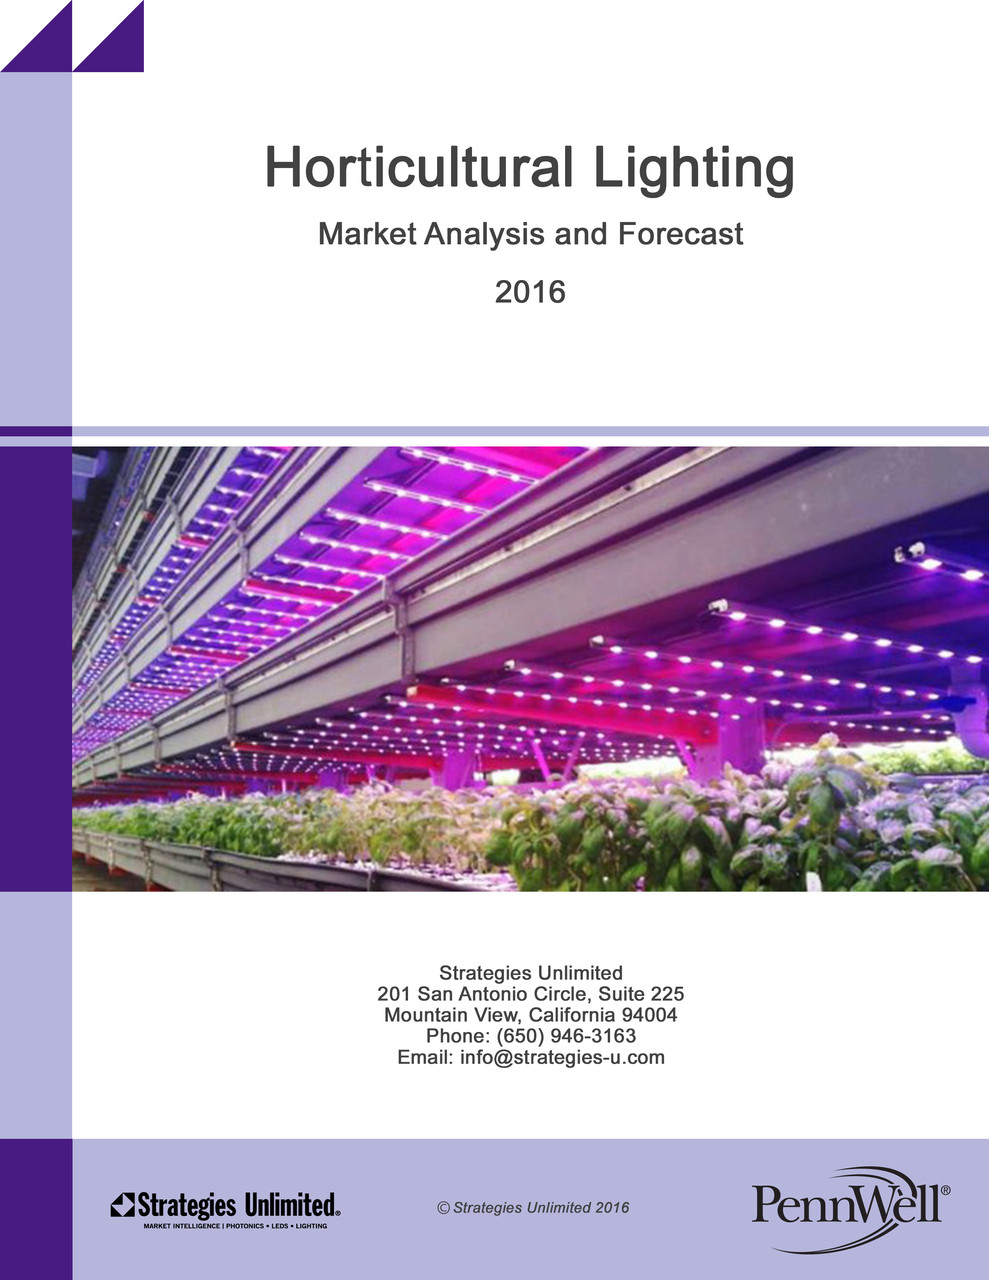 Horticultural Lighting Market Analysis And Forecast 2016